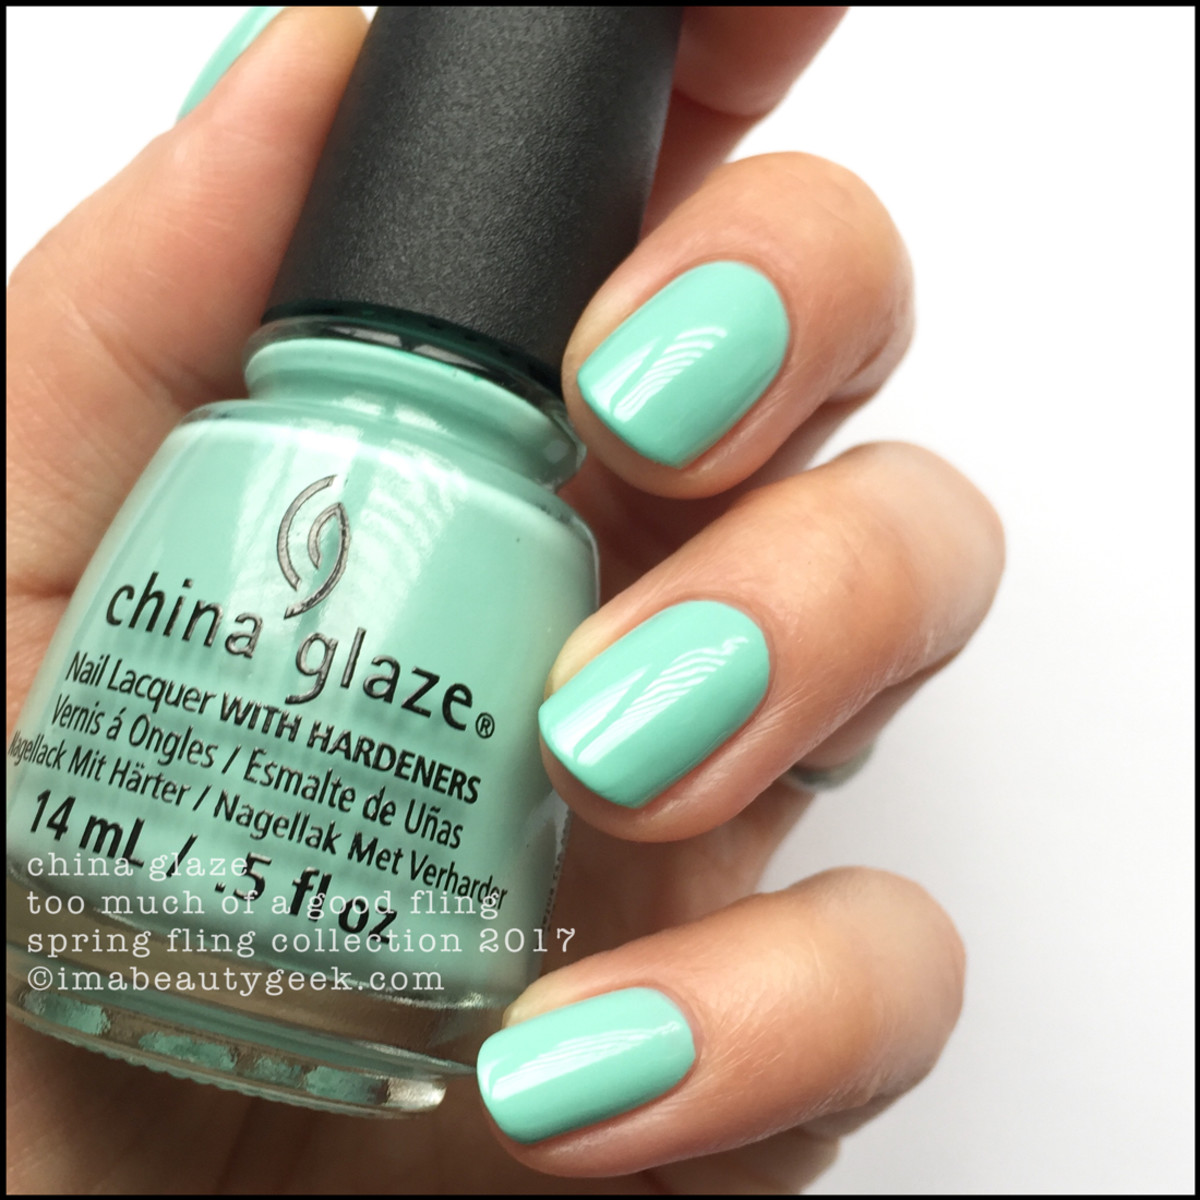 China Glaze Too Much of a Good Fling_China Glaze Spring Fling Collection Swatches